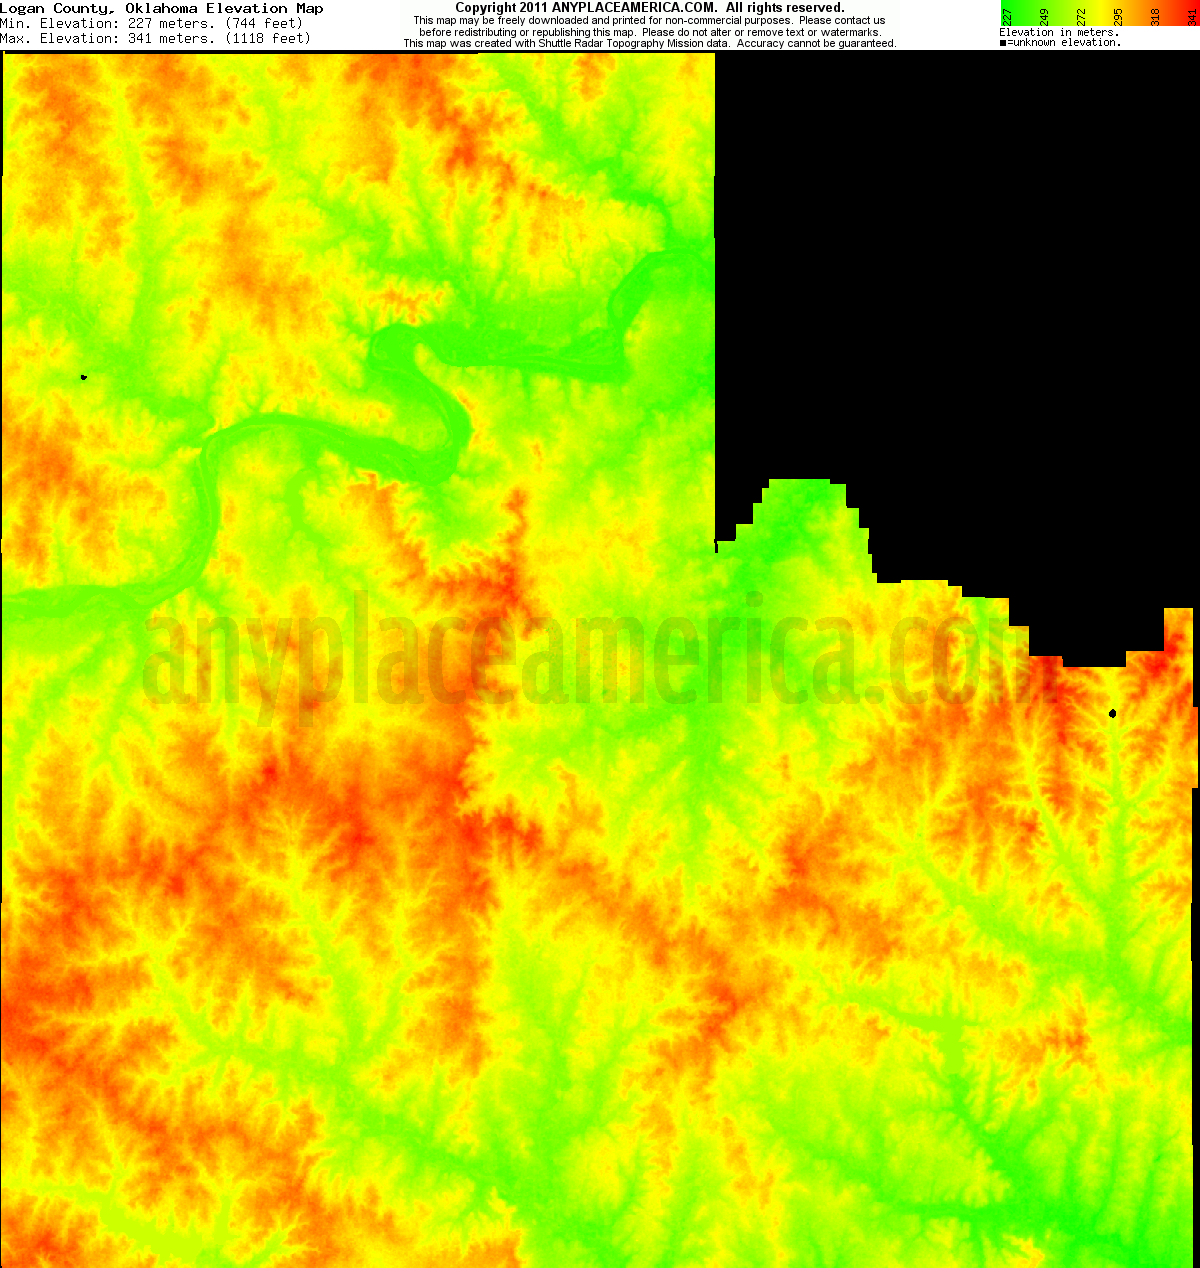 Logan, Oklahoma elevation map